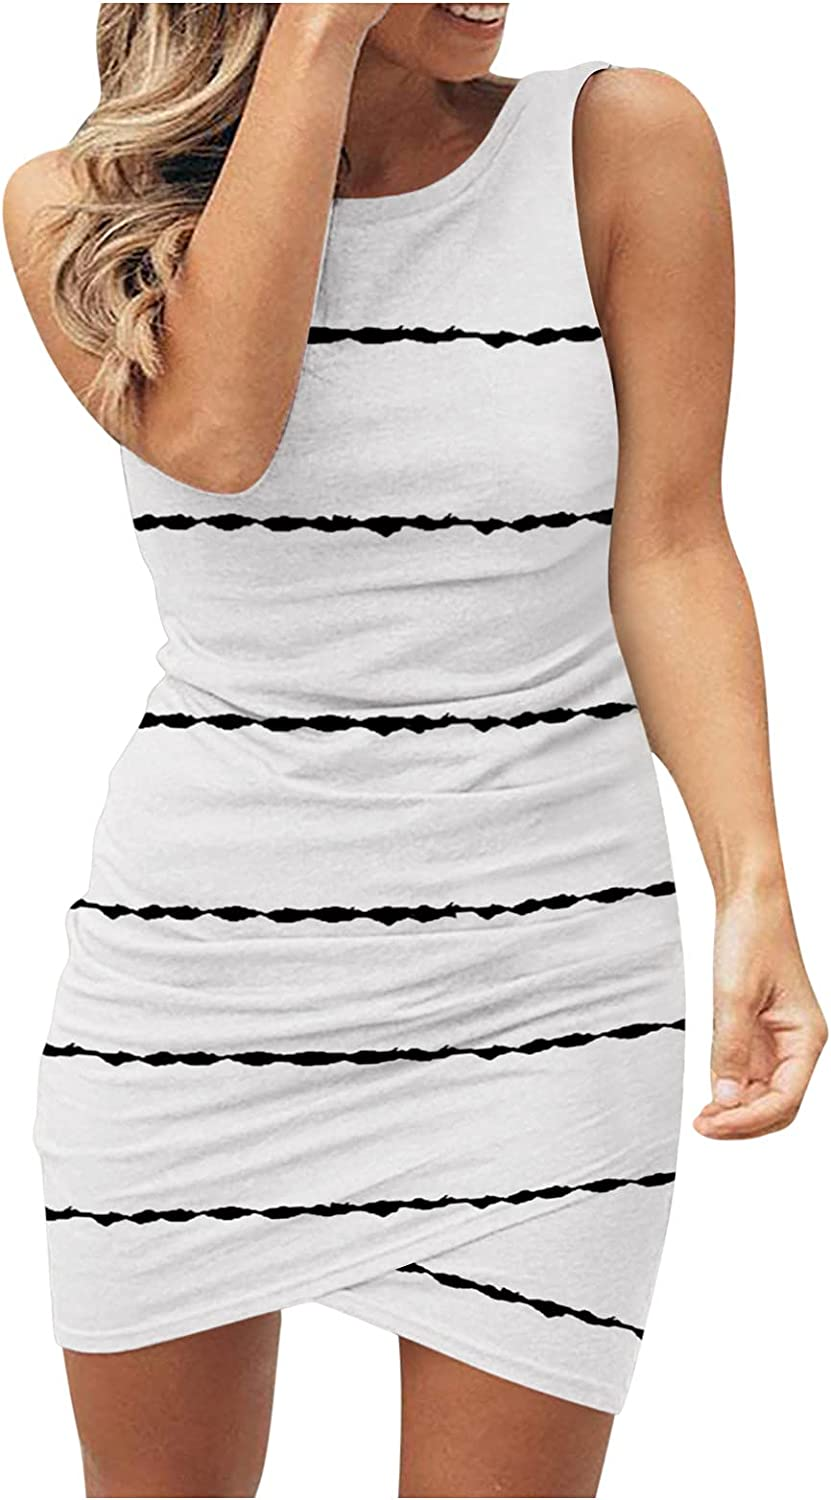 Ranking integrated 1st place WYTong Women's Stripe Overseas parallel import regular item Dress Casual Sleeveless Pleated Neck Round